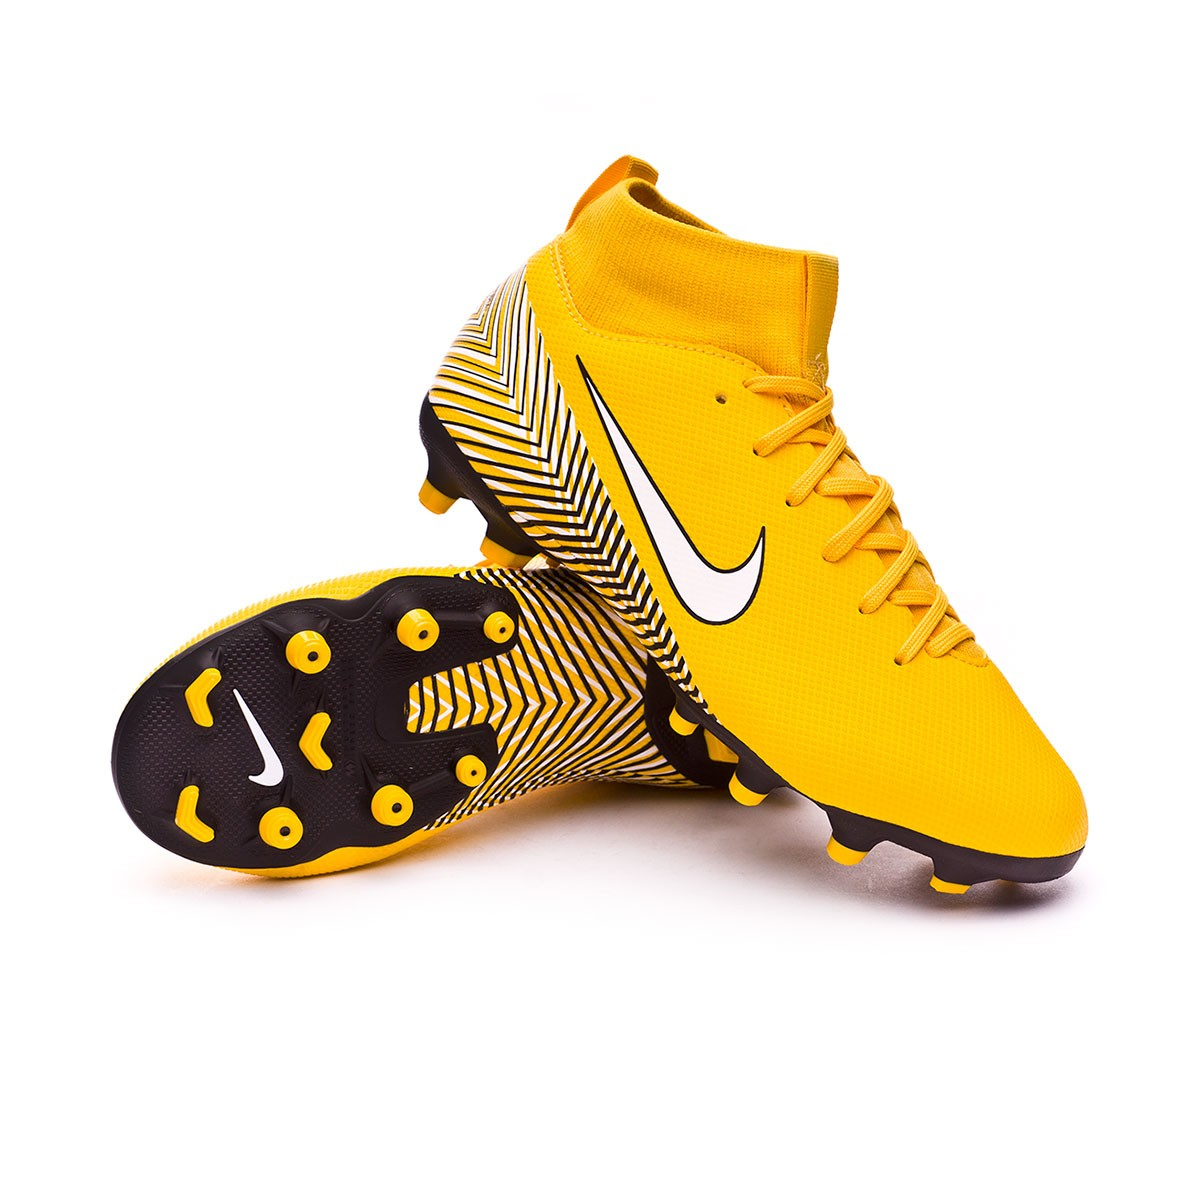 on sale 2a0b3 7ef32 Bota Mercurial Superfly VI Academy MG Neymar Niño Yellow-Black